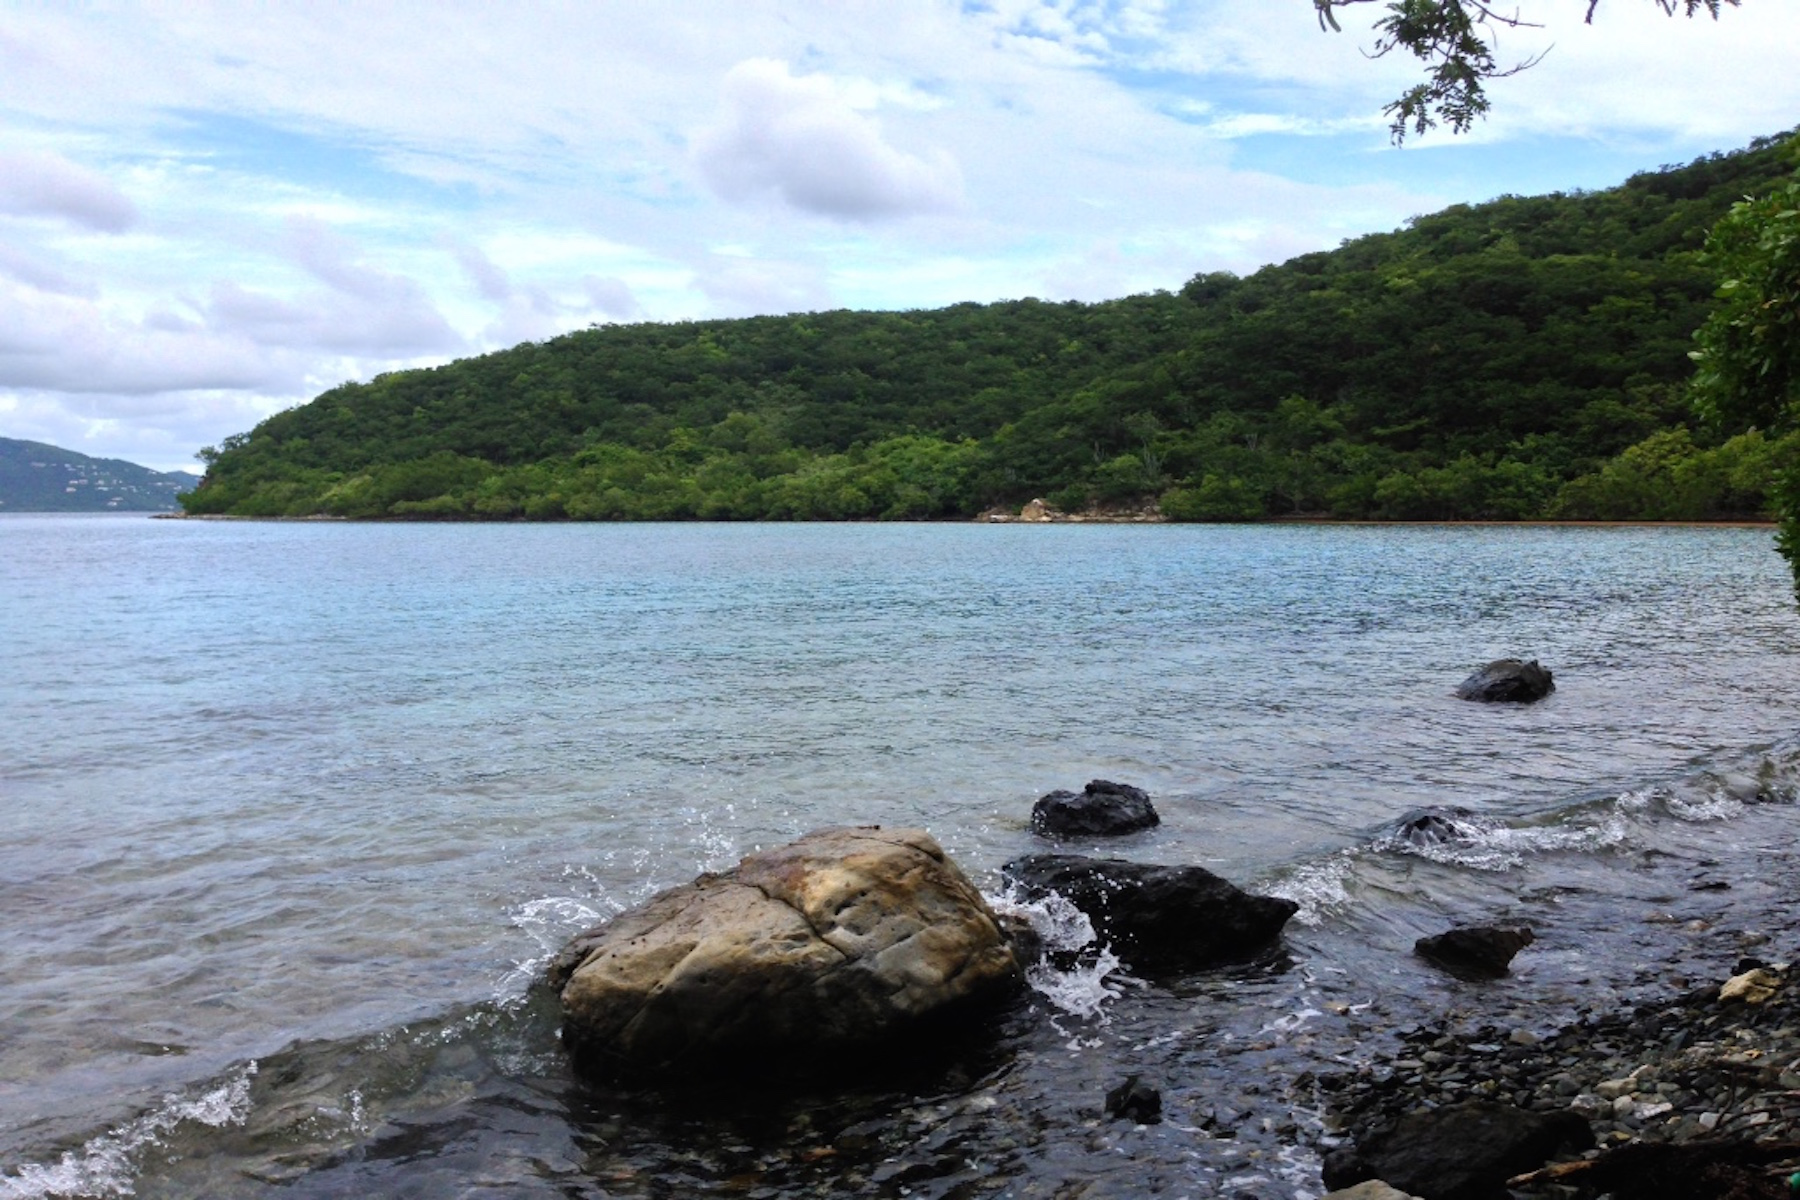 Land for Sale at 6-o-4 Hansen Bay 6-o-4 Hansen Bay St John, Virgin Islands 00830 United States Virgin Islands